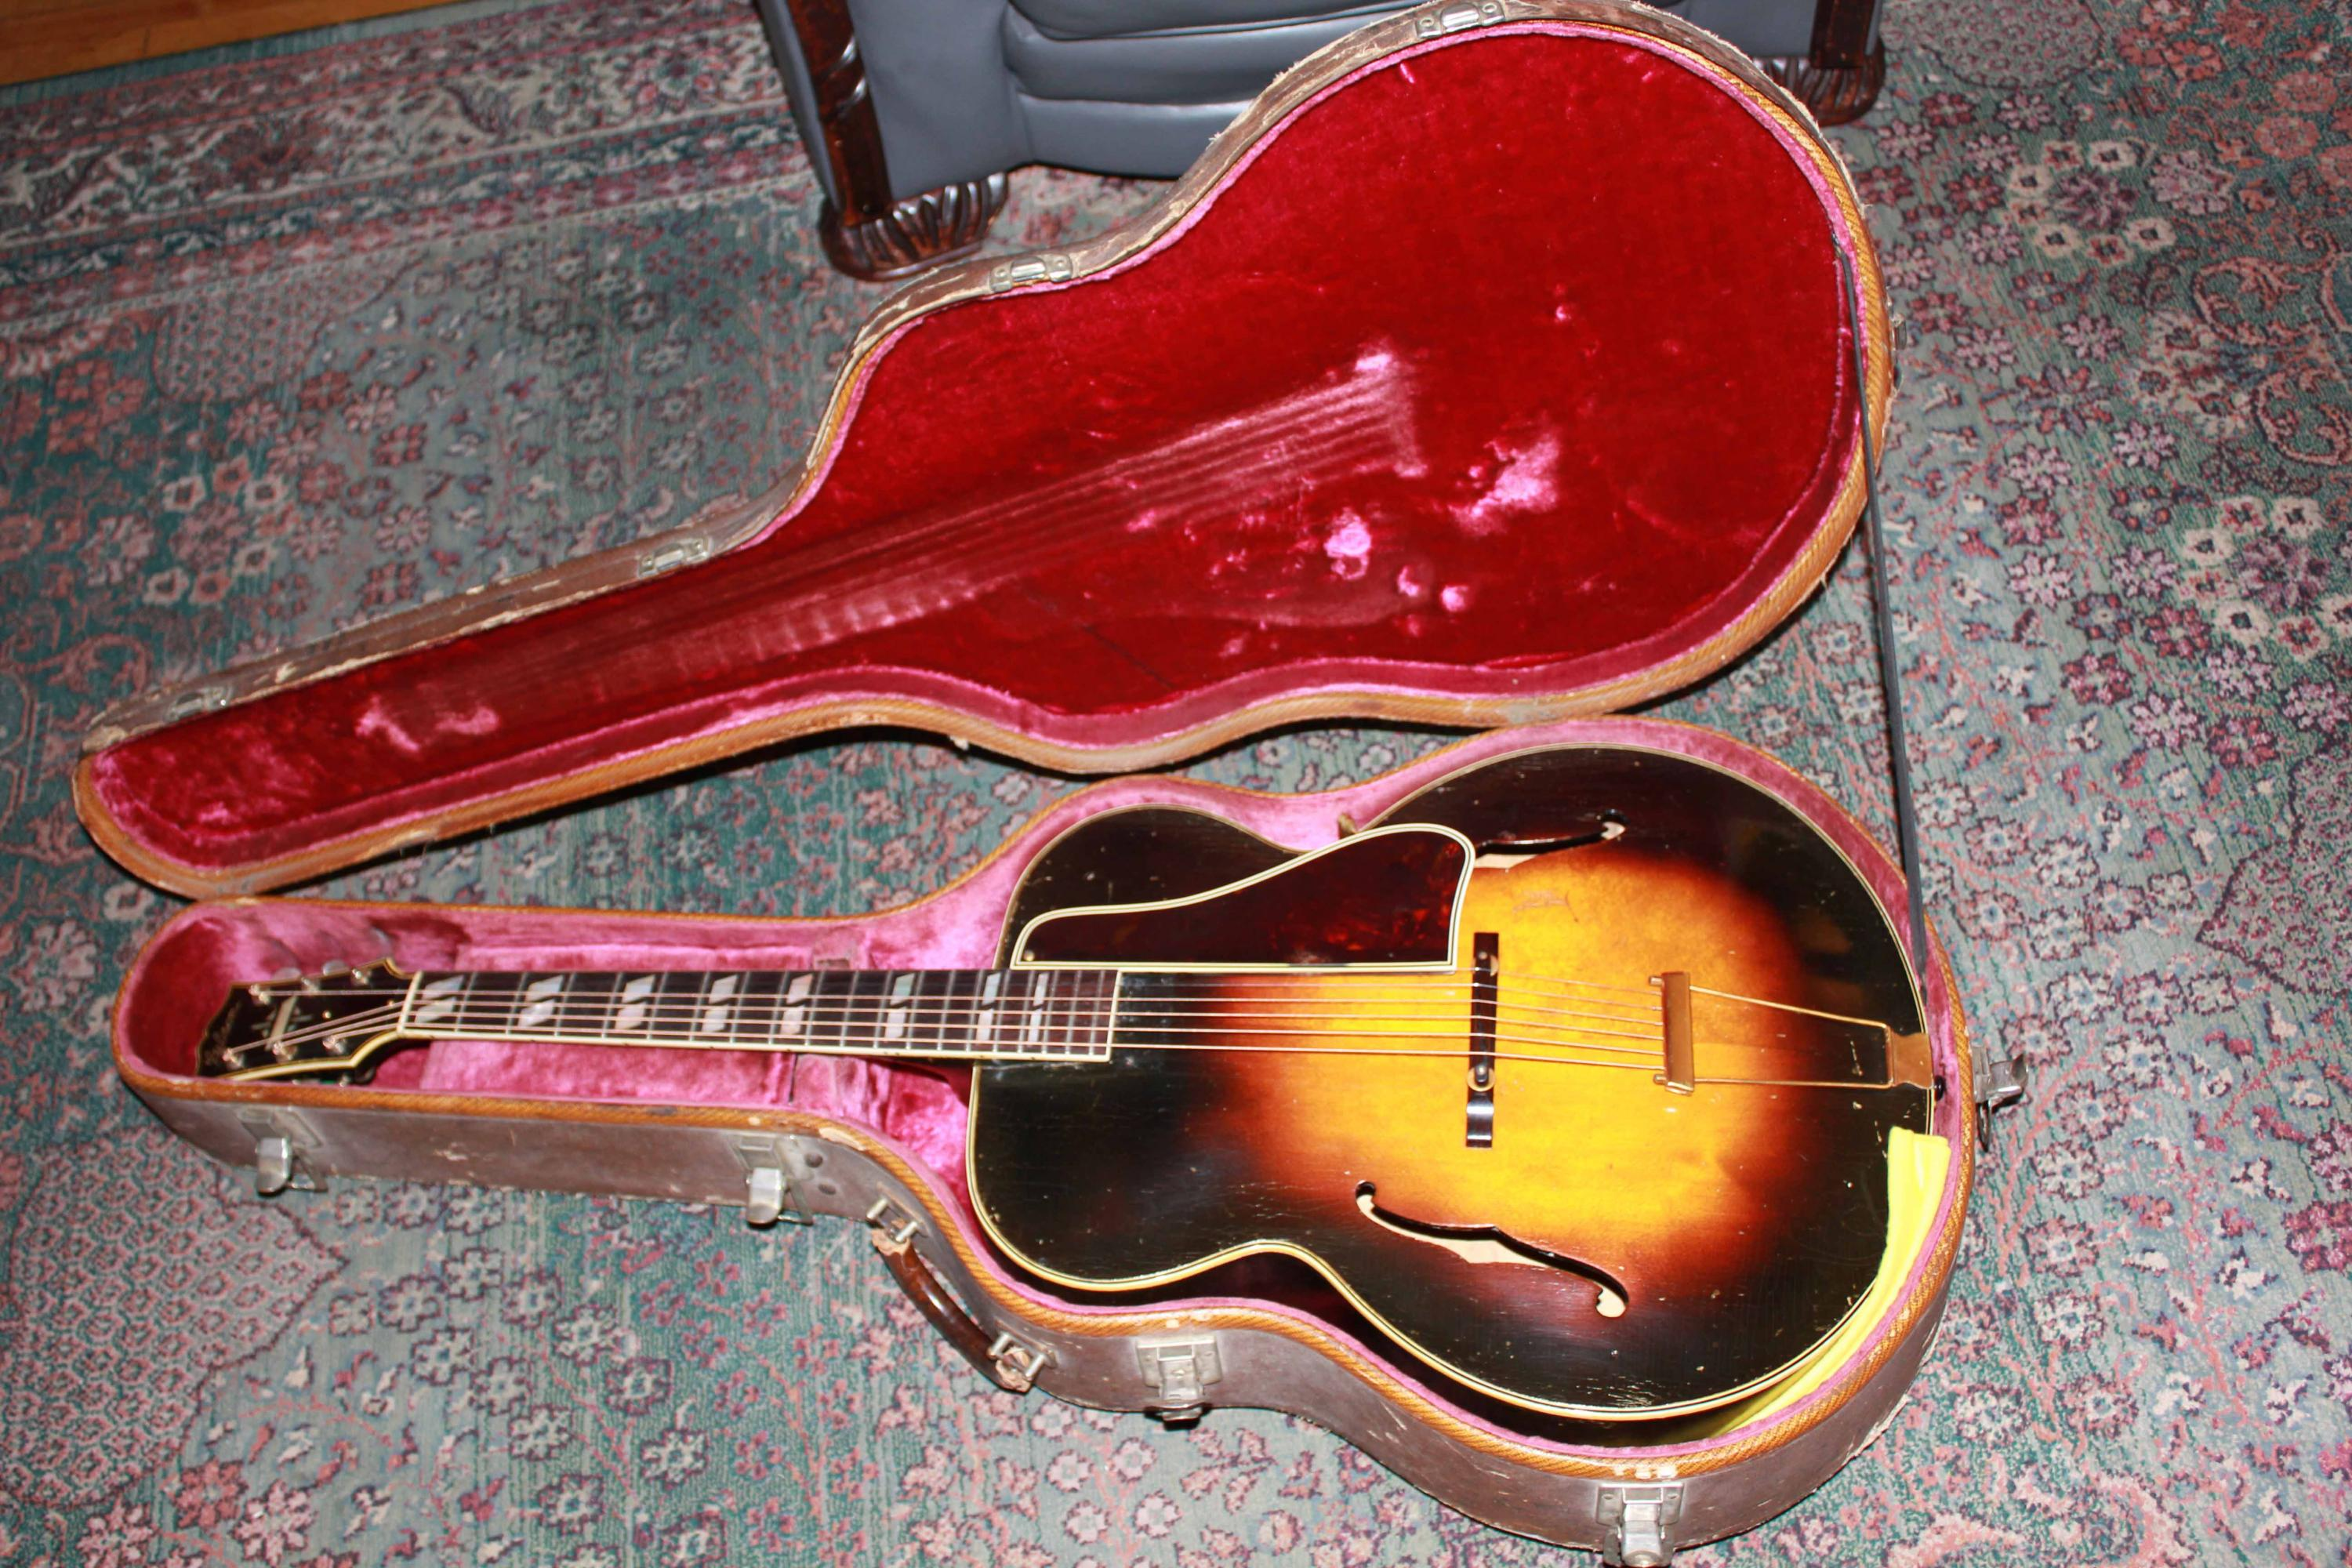 Advice on archtop pickups-gib-l12-35-donwallace-jpg